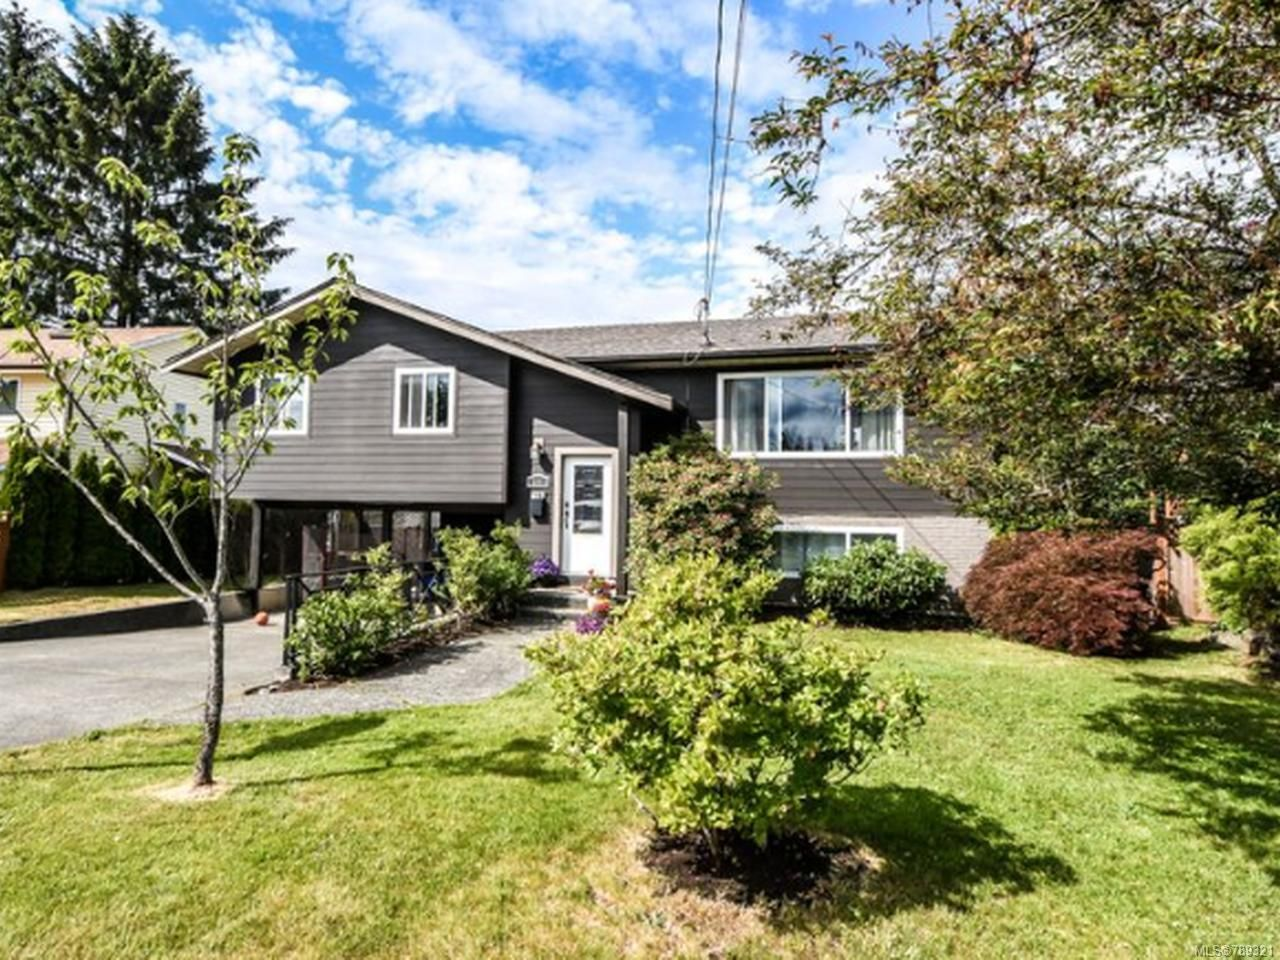 Main Photo: 566 BARTLETT ROAD in CAMPBELL RIVER: CR Willow Point House for sale (Campbell River)  : MLS®# 789321